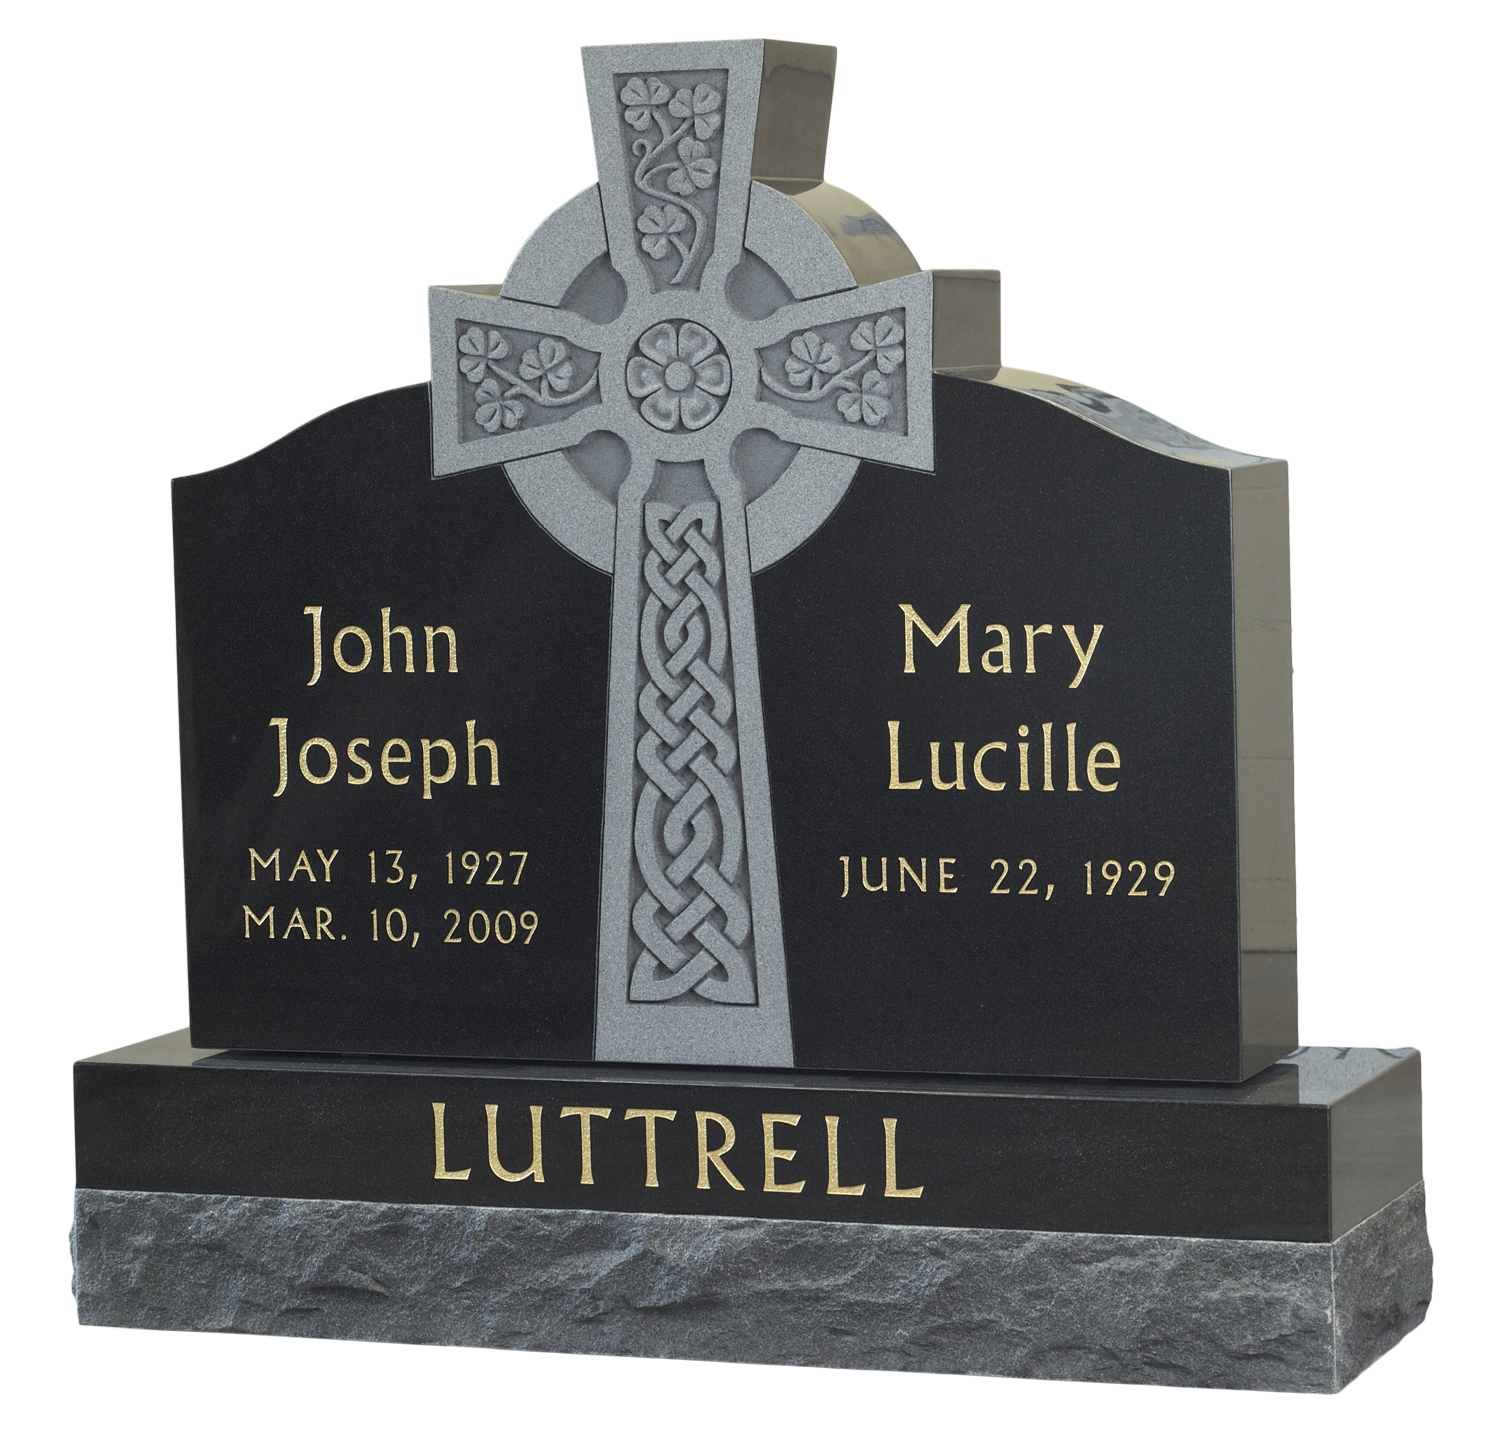 Luttrell - Monument.png